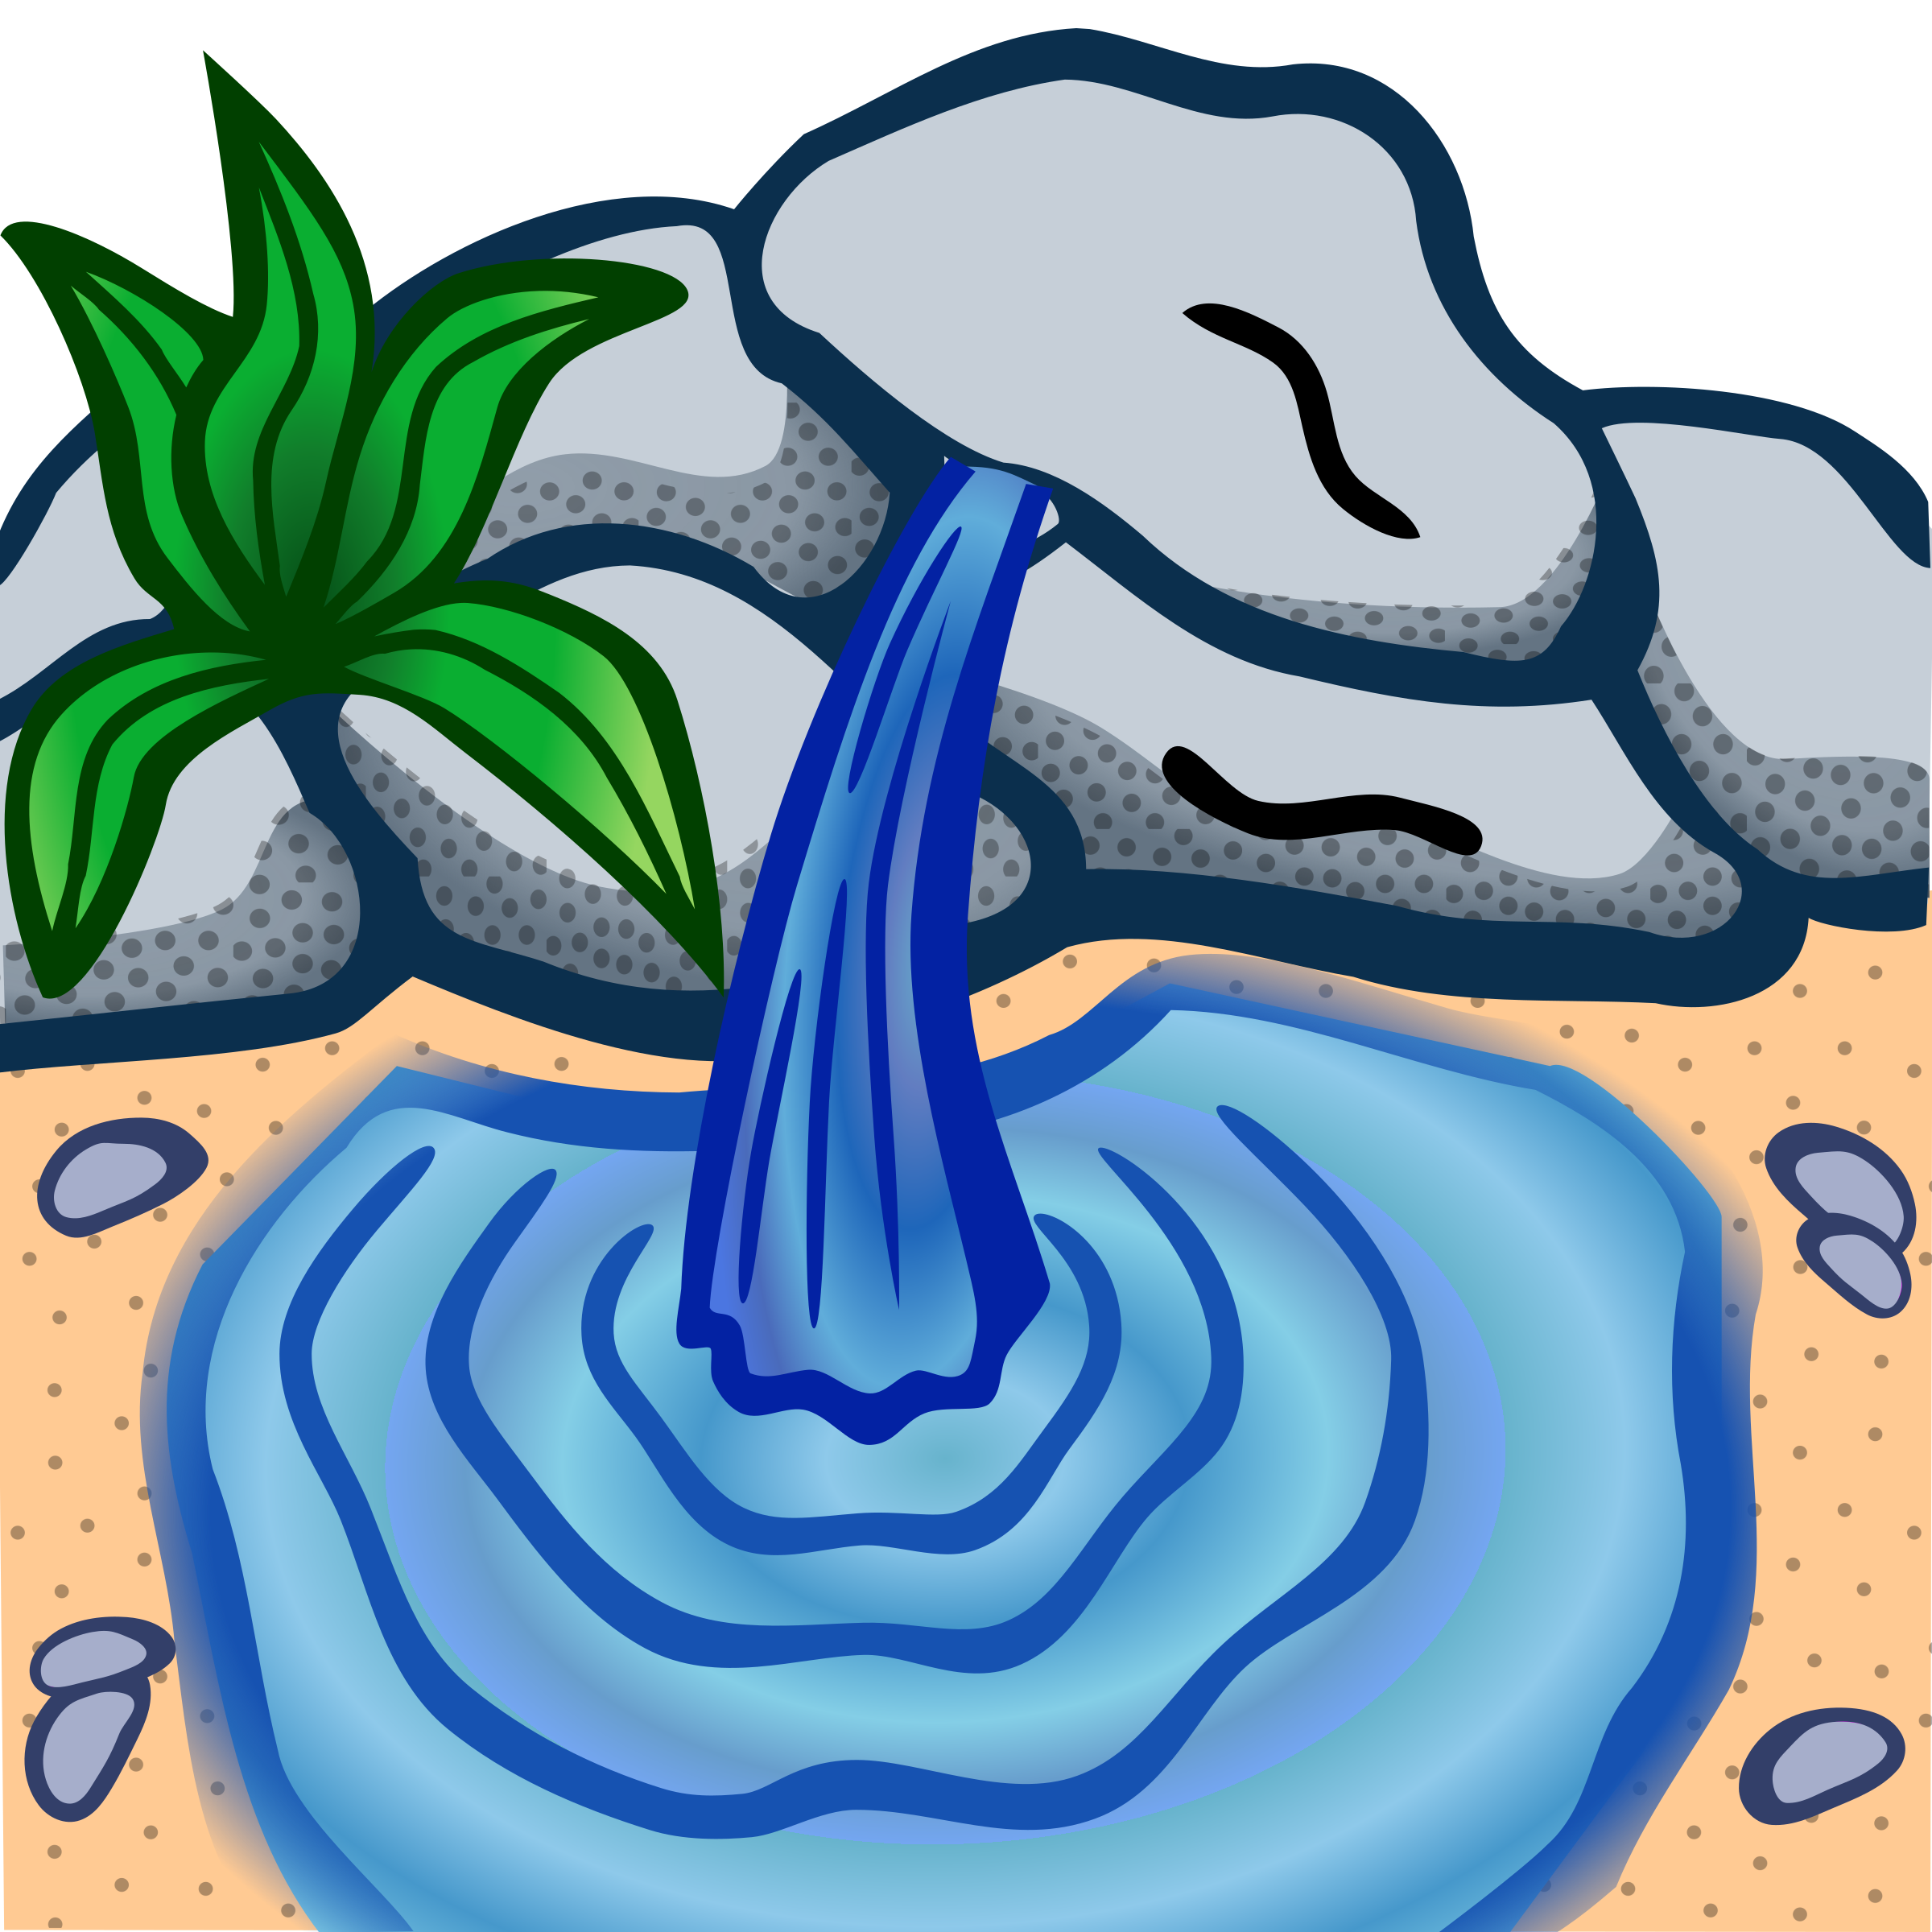 Sream clipart spring water Water background clipart Spring clipart